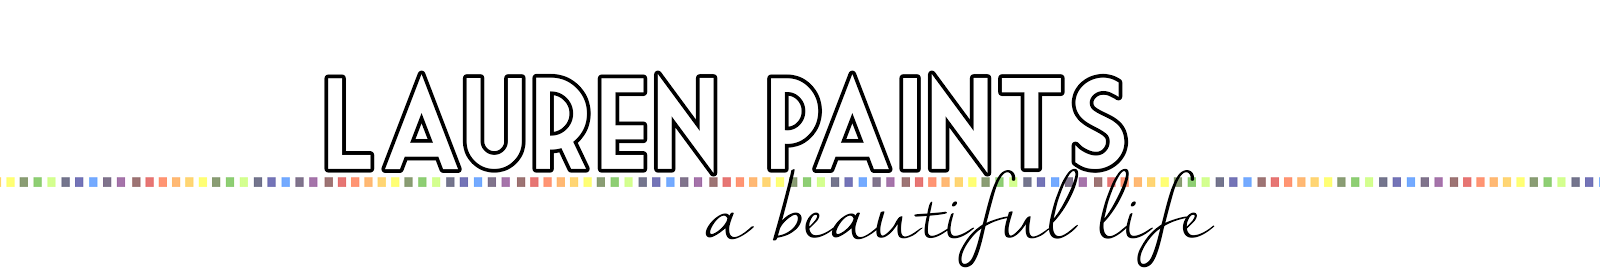 Lauren Paints | a beautiful life